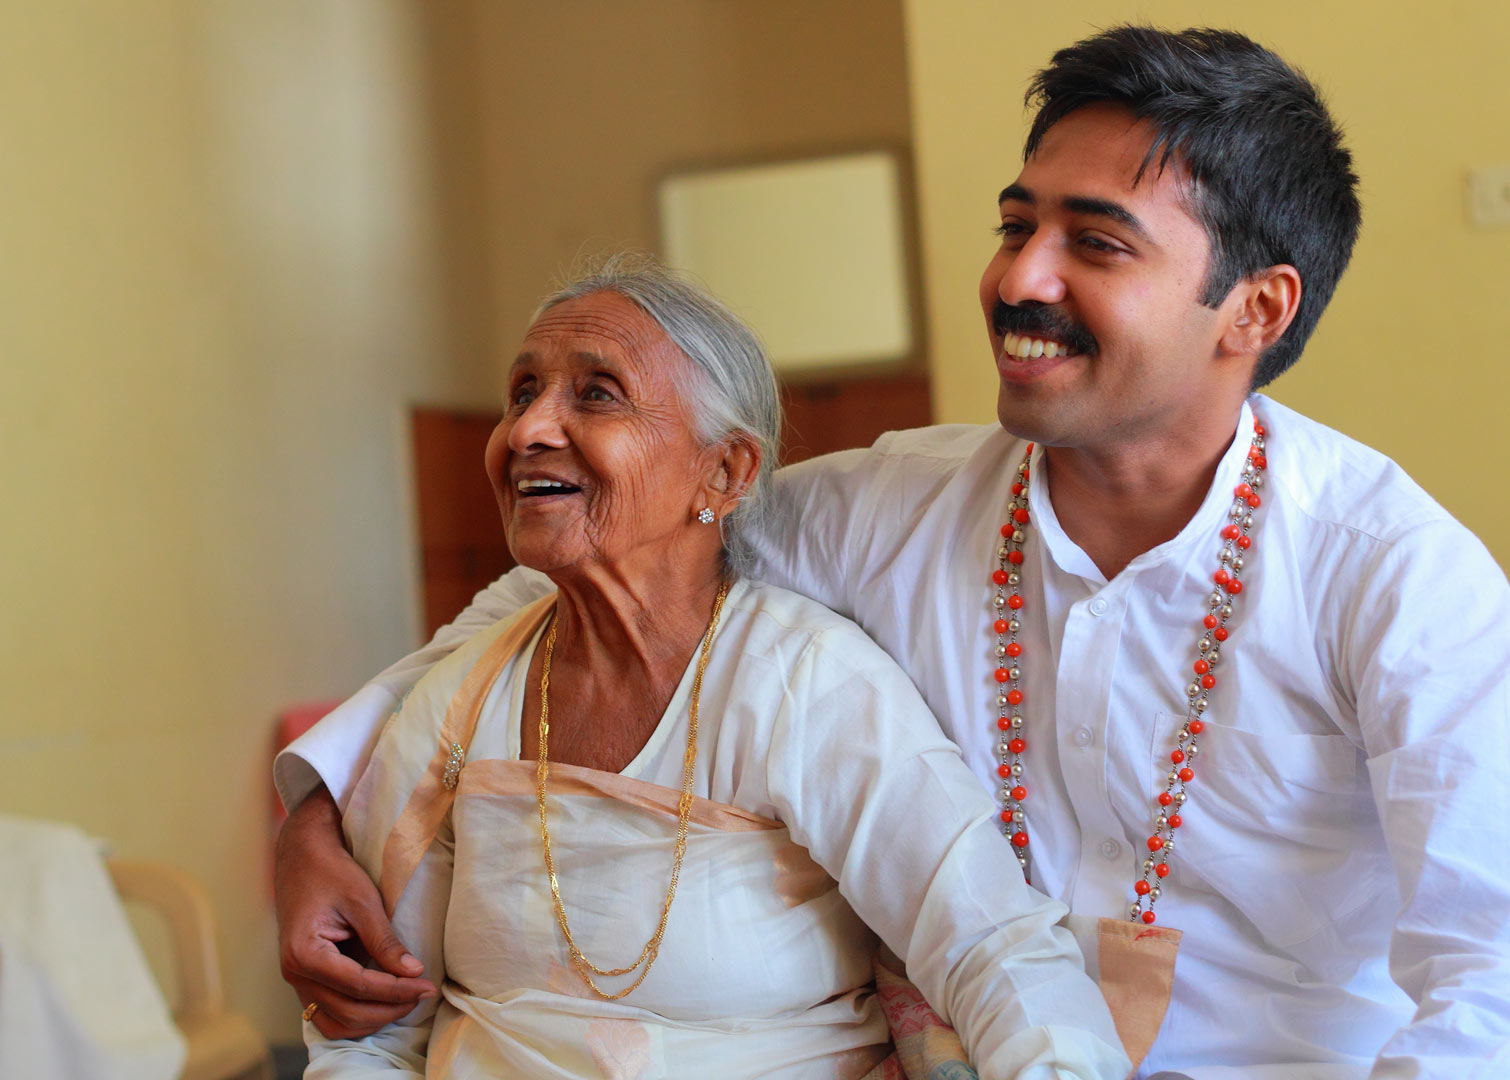 A happy granny with her grandson who is also the groom